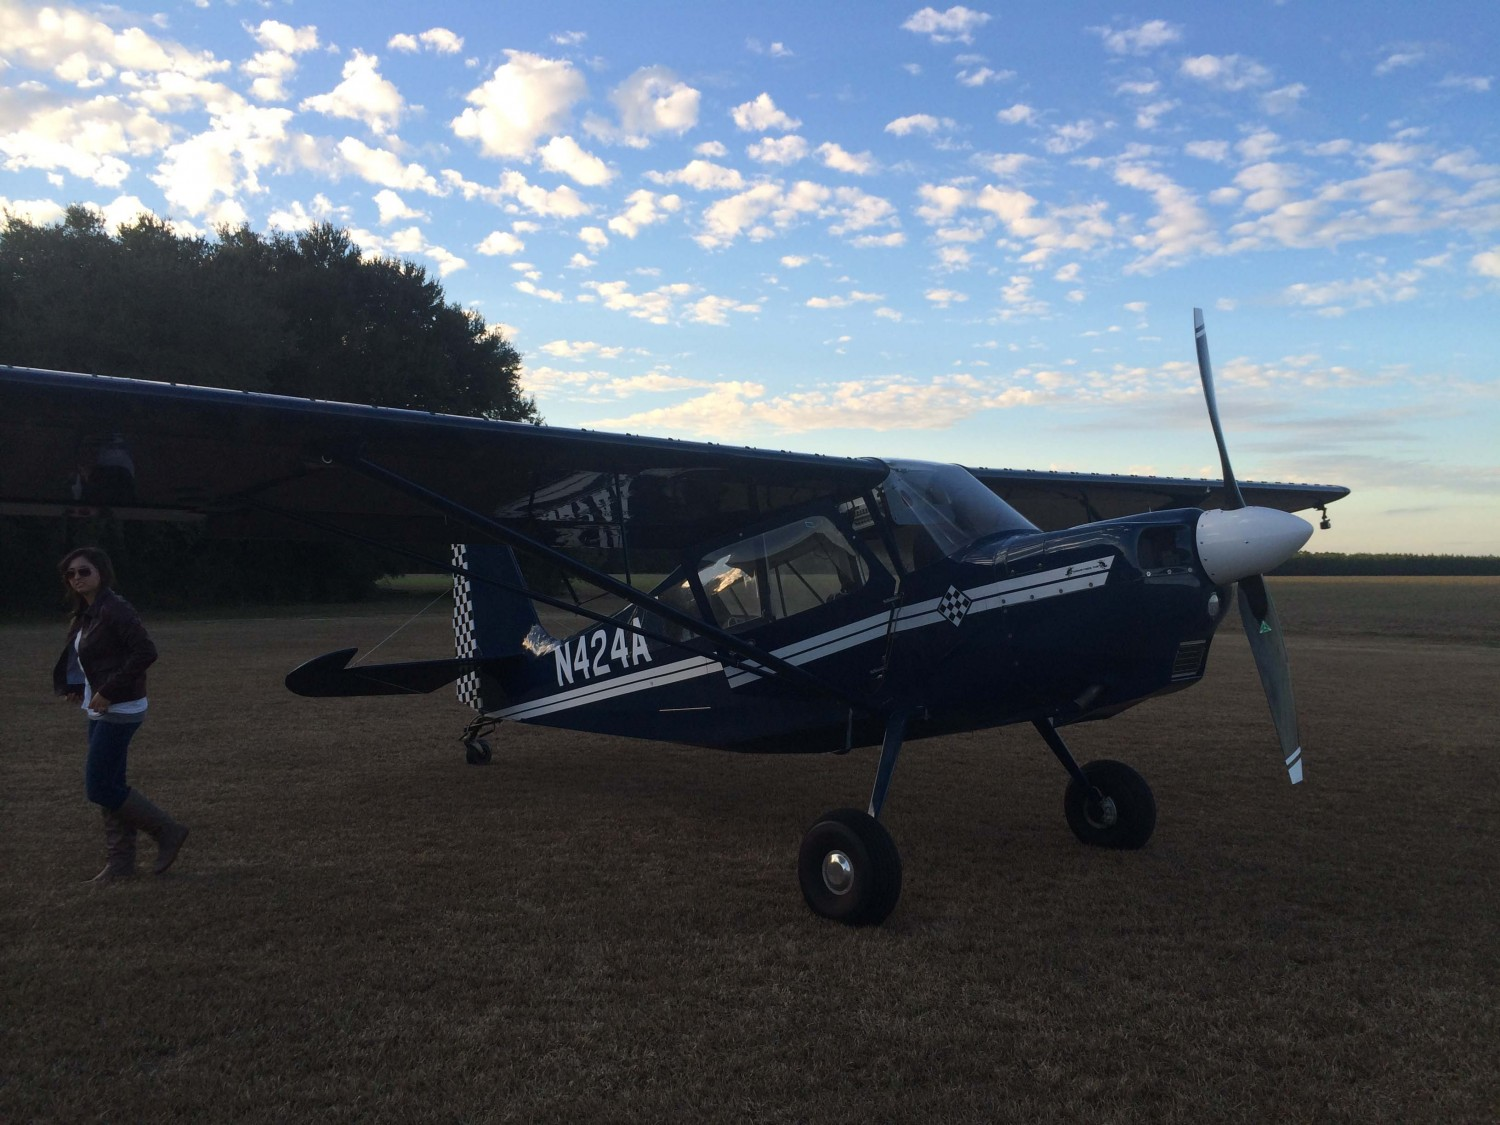 On The Ground At Perdido Winds Airport